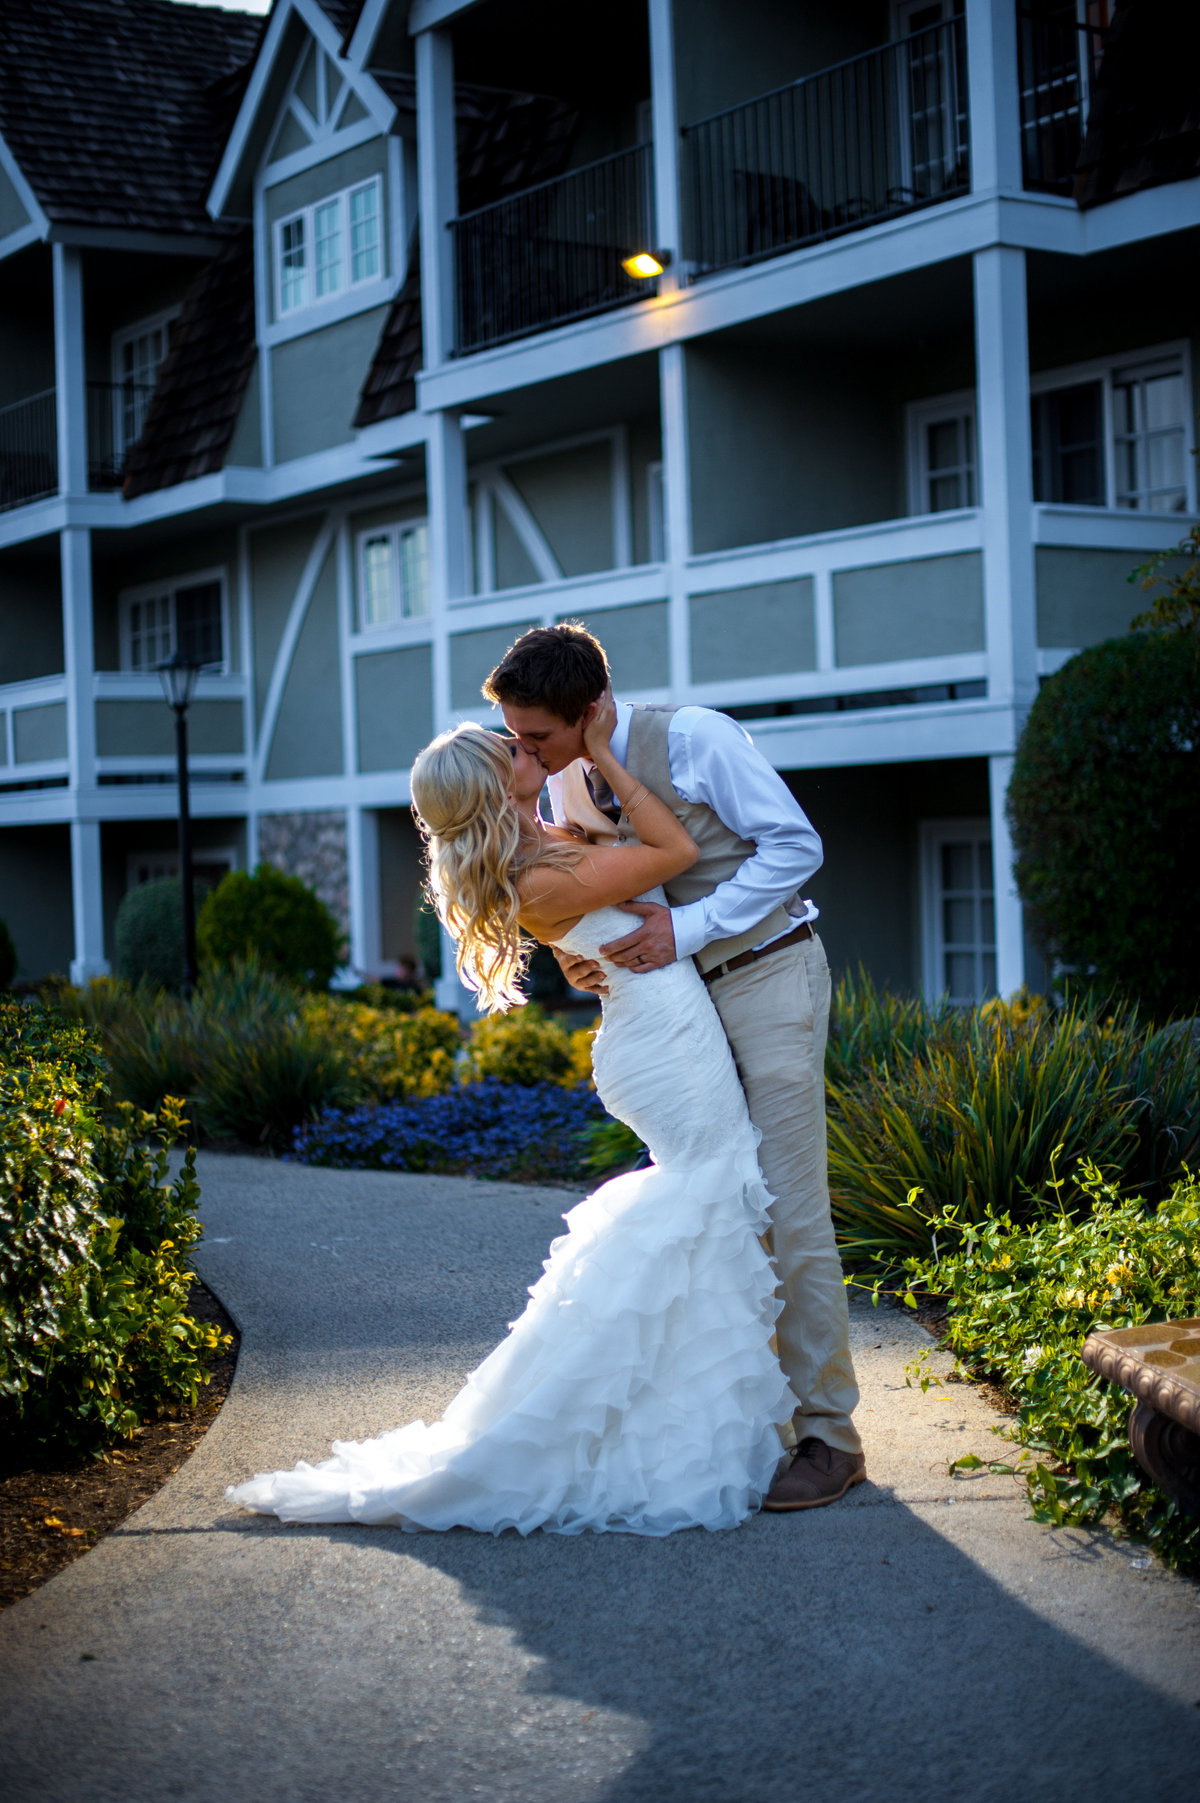 Chris & Wendy; Husband & Wife Wedding Photographers capturing your ...